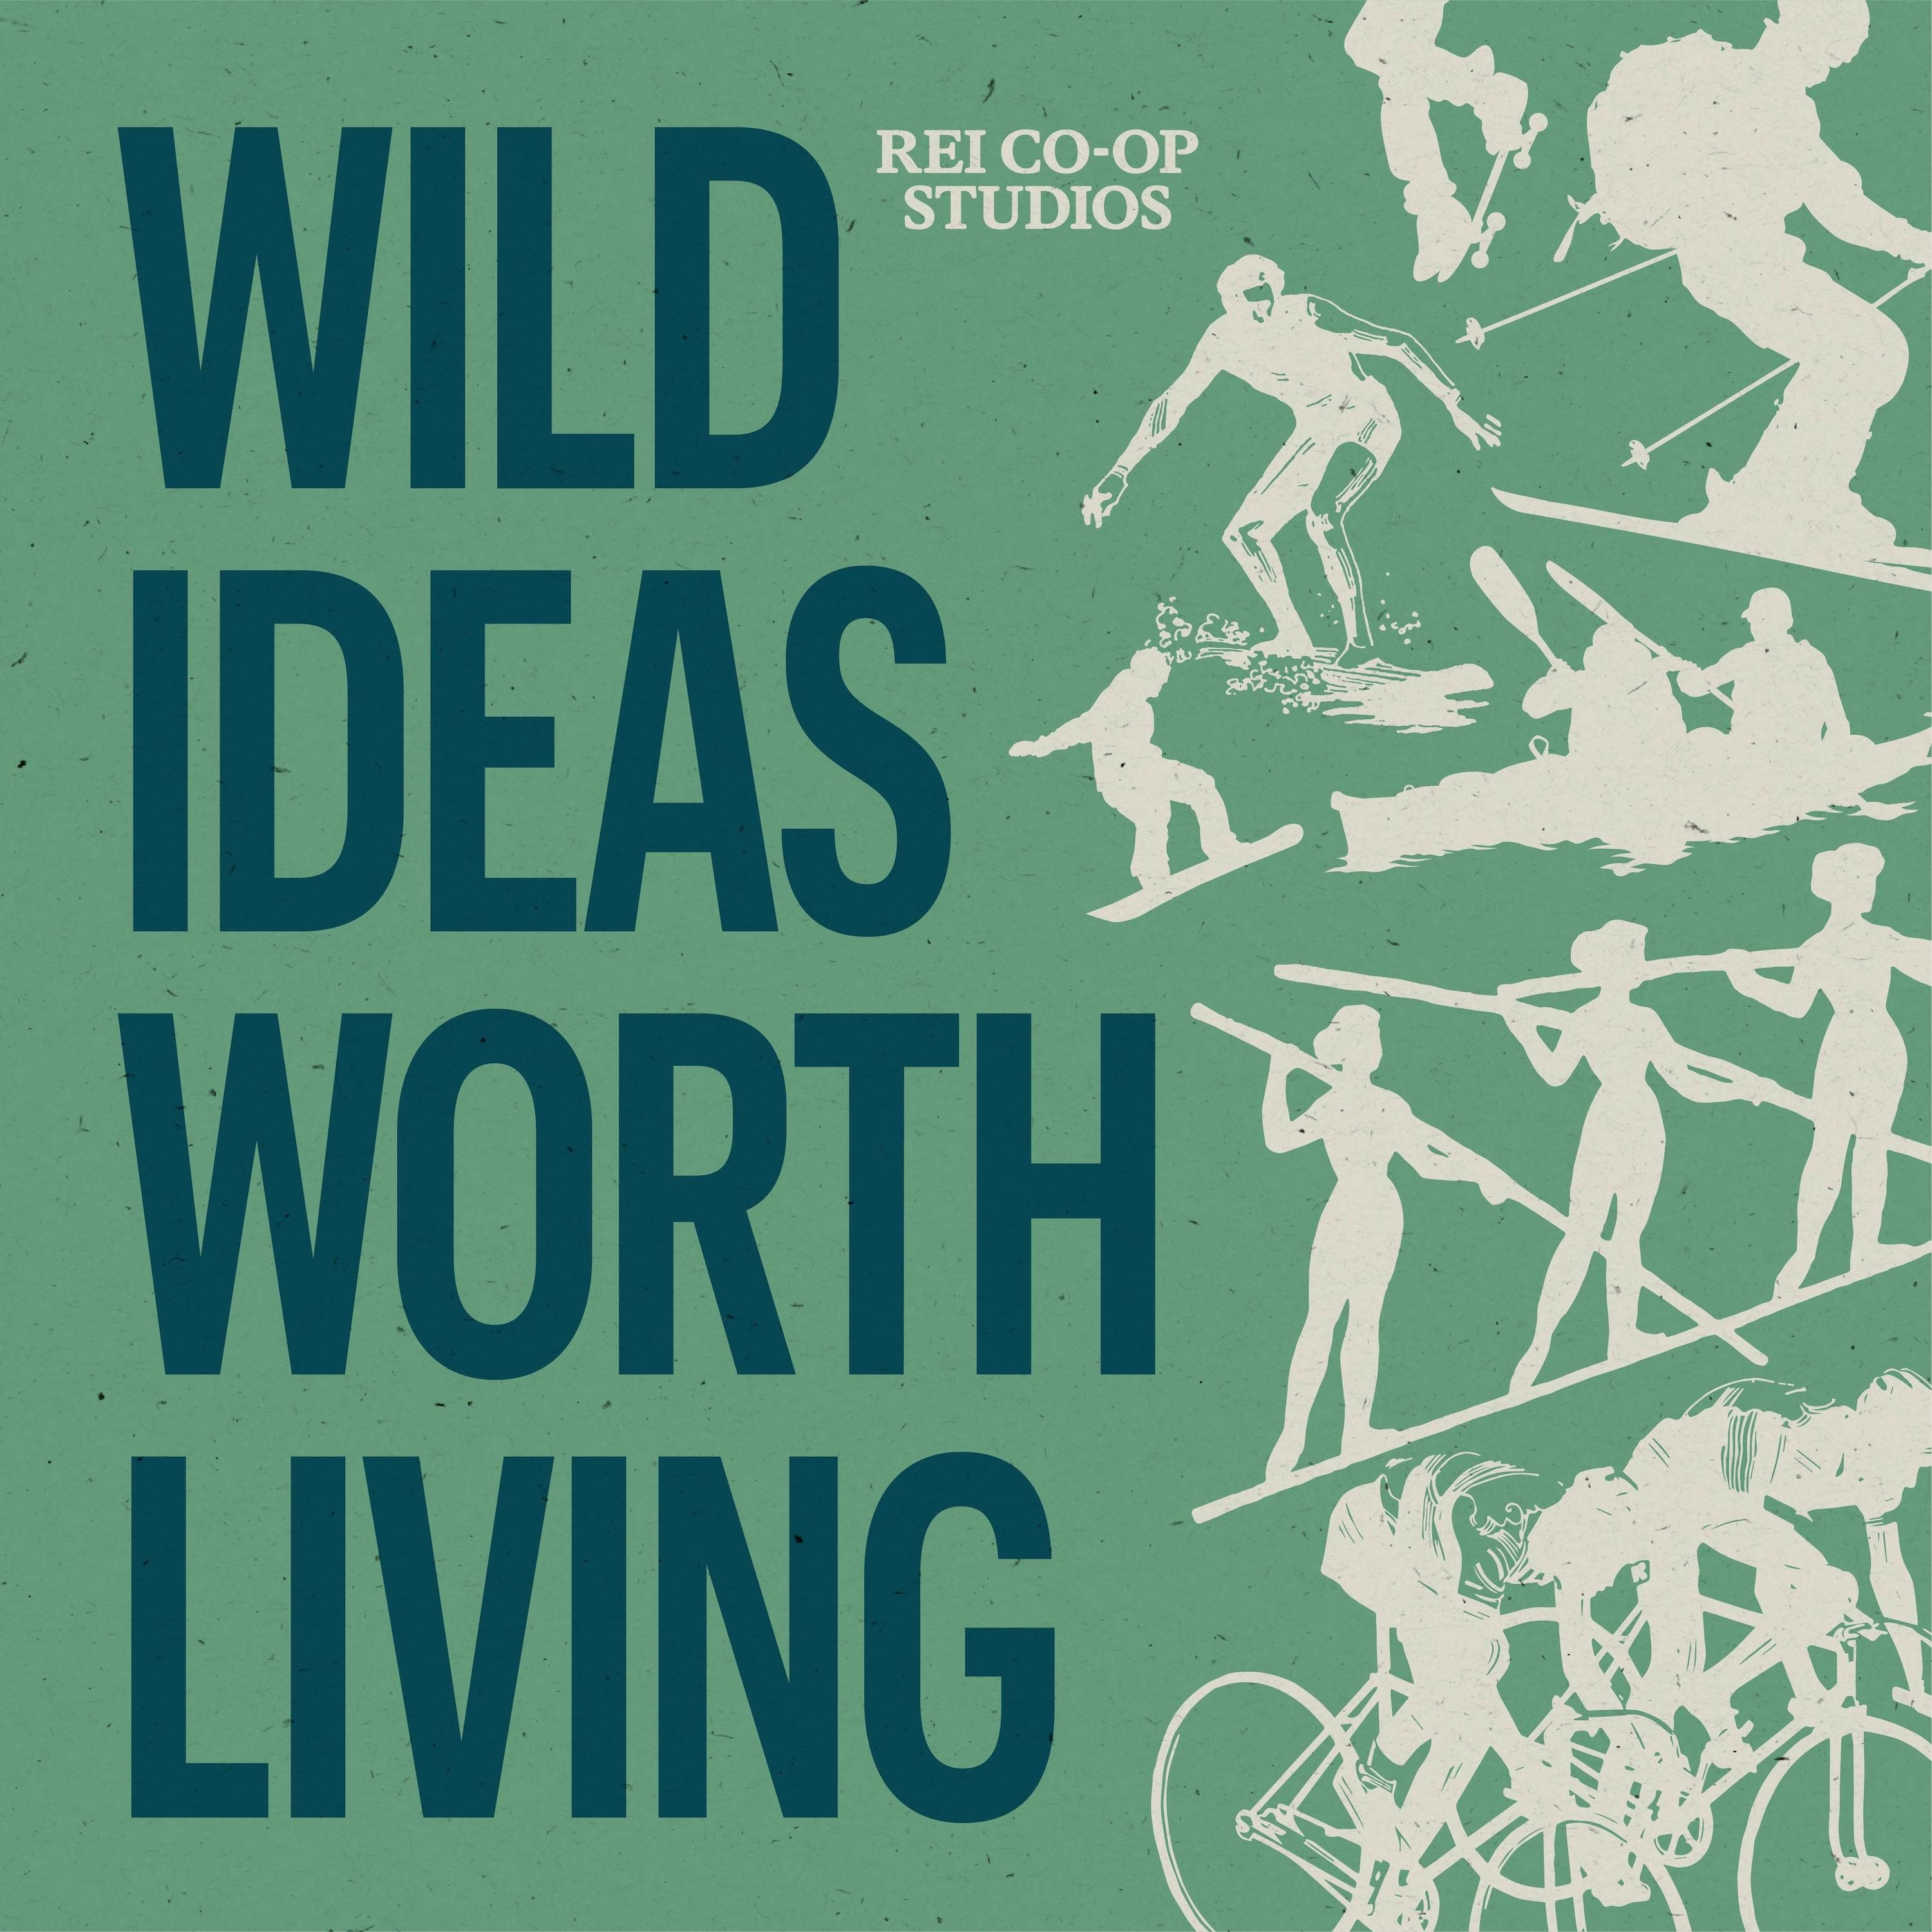 Wild Ideas Worth Living | Presented by REI